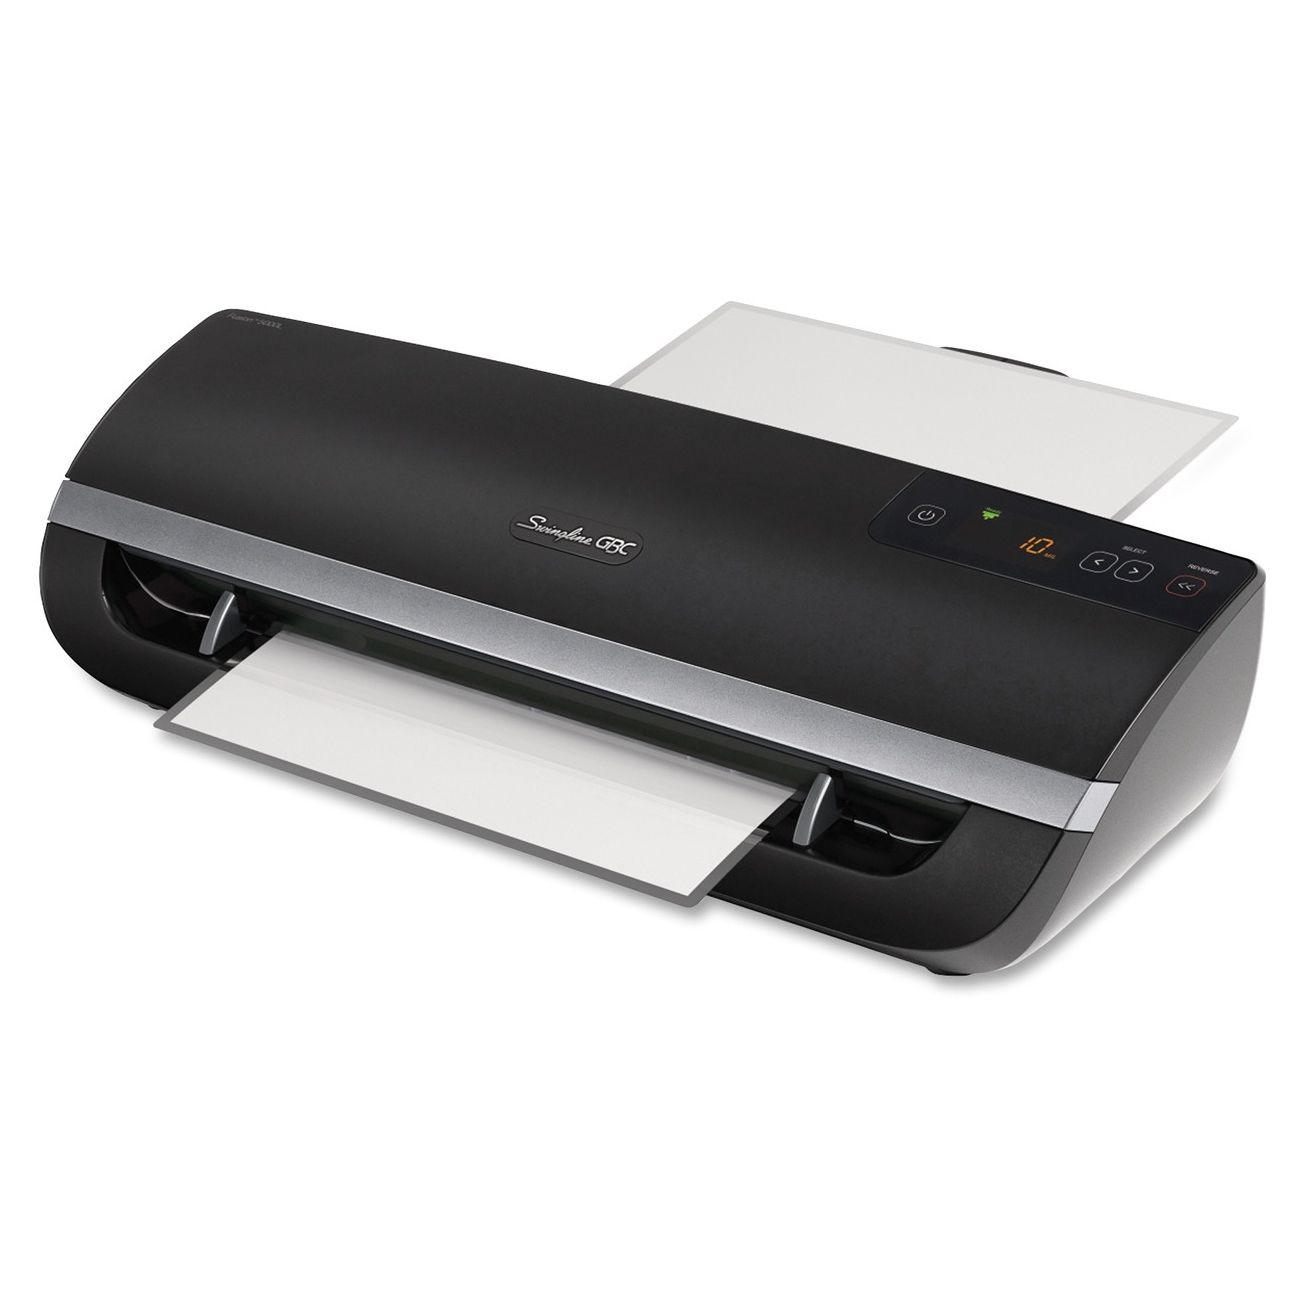 Swingline Fusion 5000l 12 Laminator Item Swi1703077 Four Roller Laminating With 1 Minute Warm Up Green Lig Laminators Auto Reverse Technology Solutions